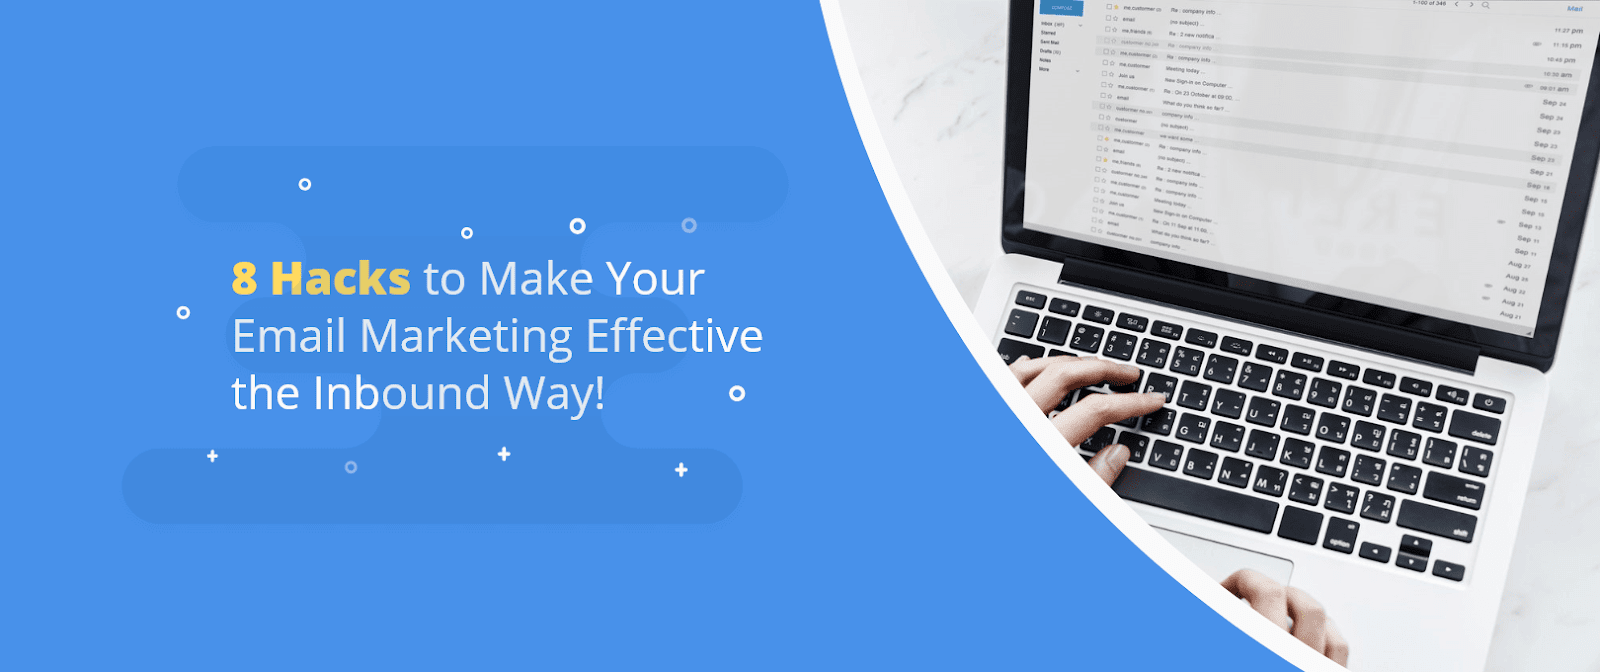 make email marketing effective